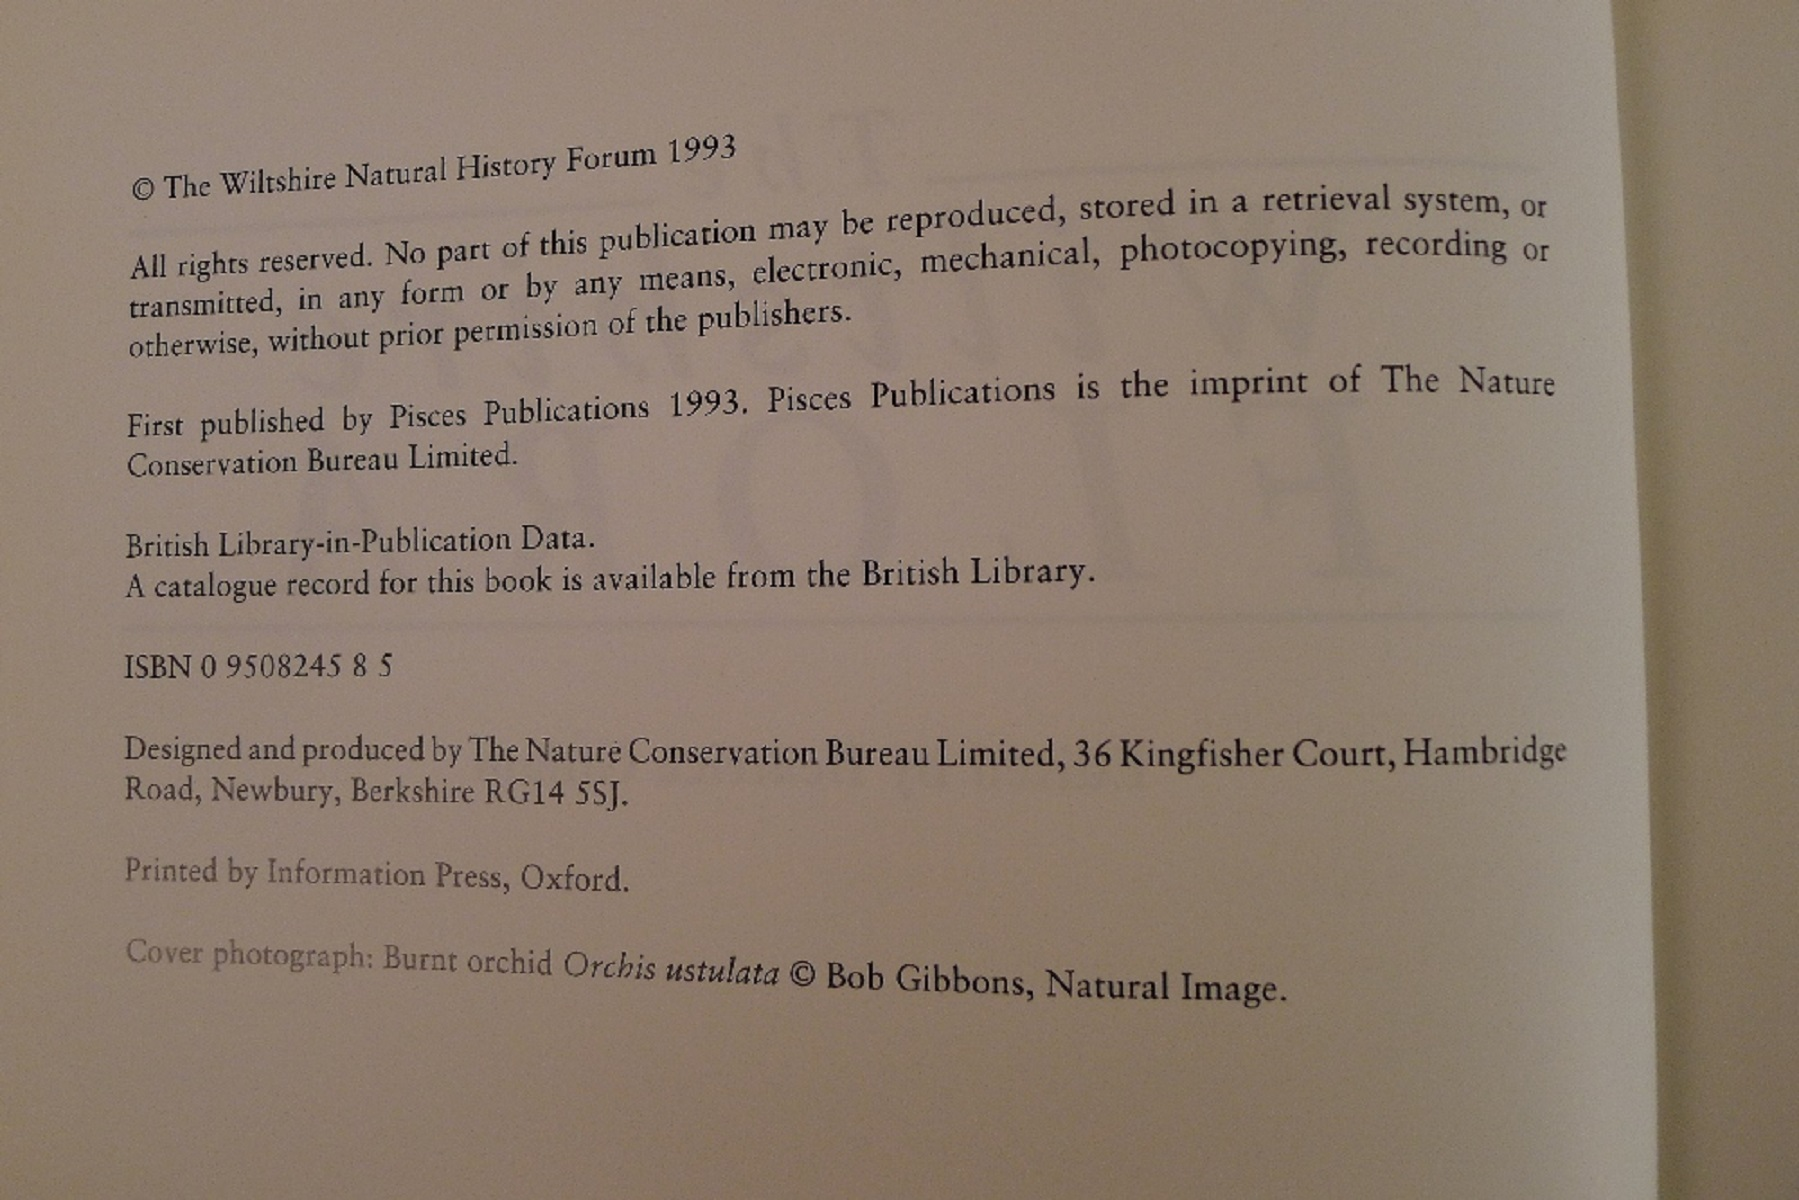 The Wiltshire Flora Edited by Beatrice Gillam published by Pisces Publications 1993 First Edition - Image 6 of 7